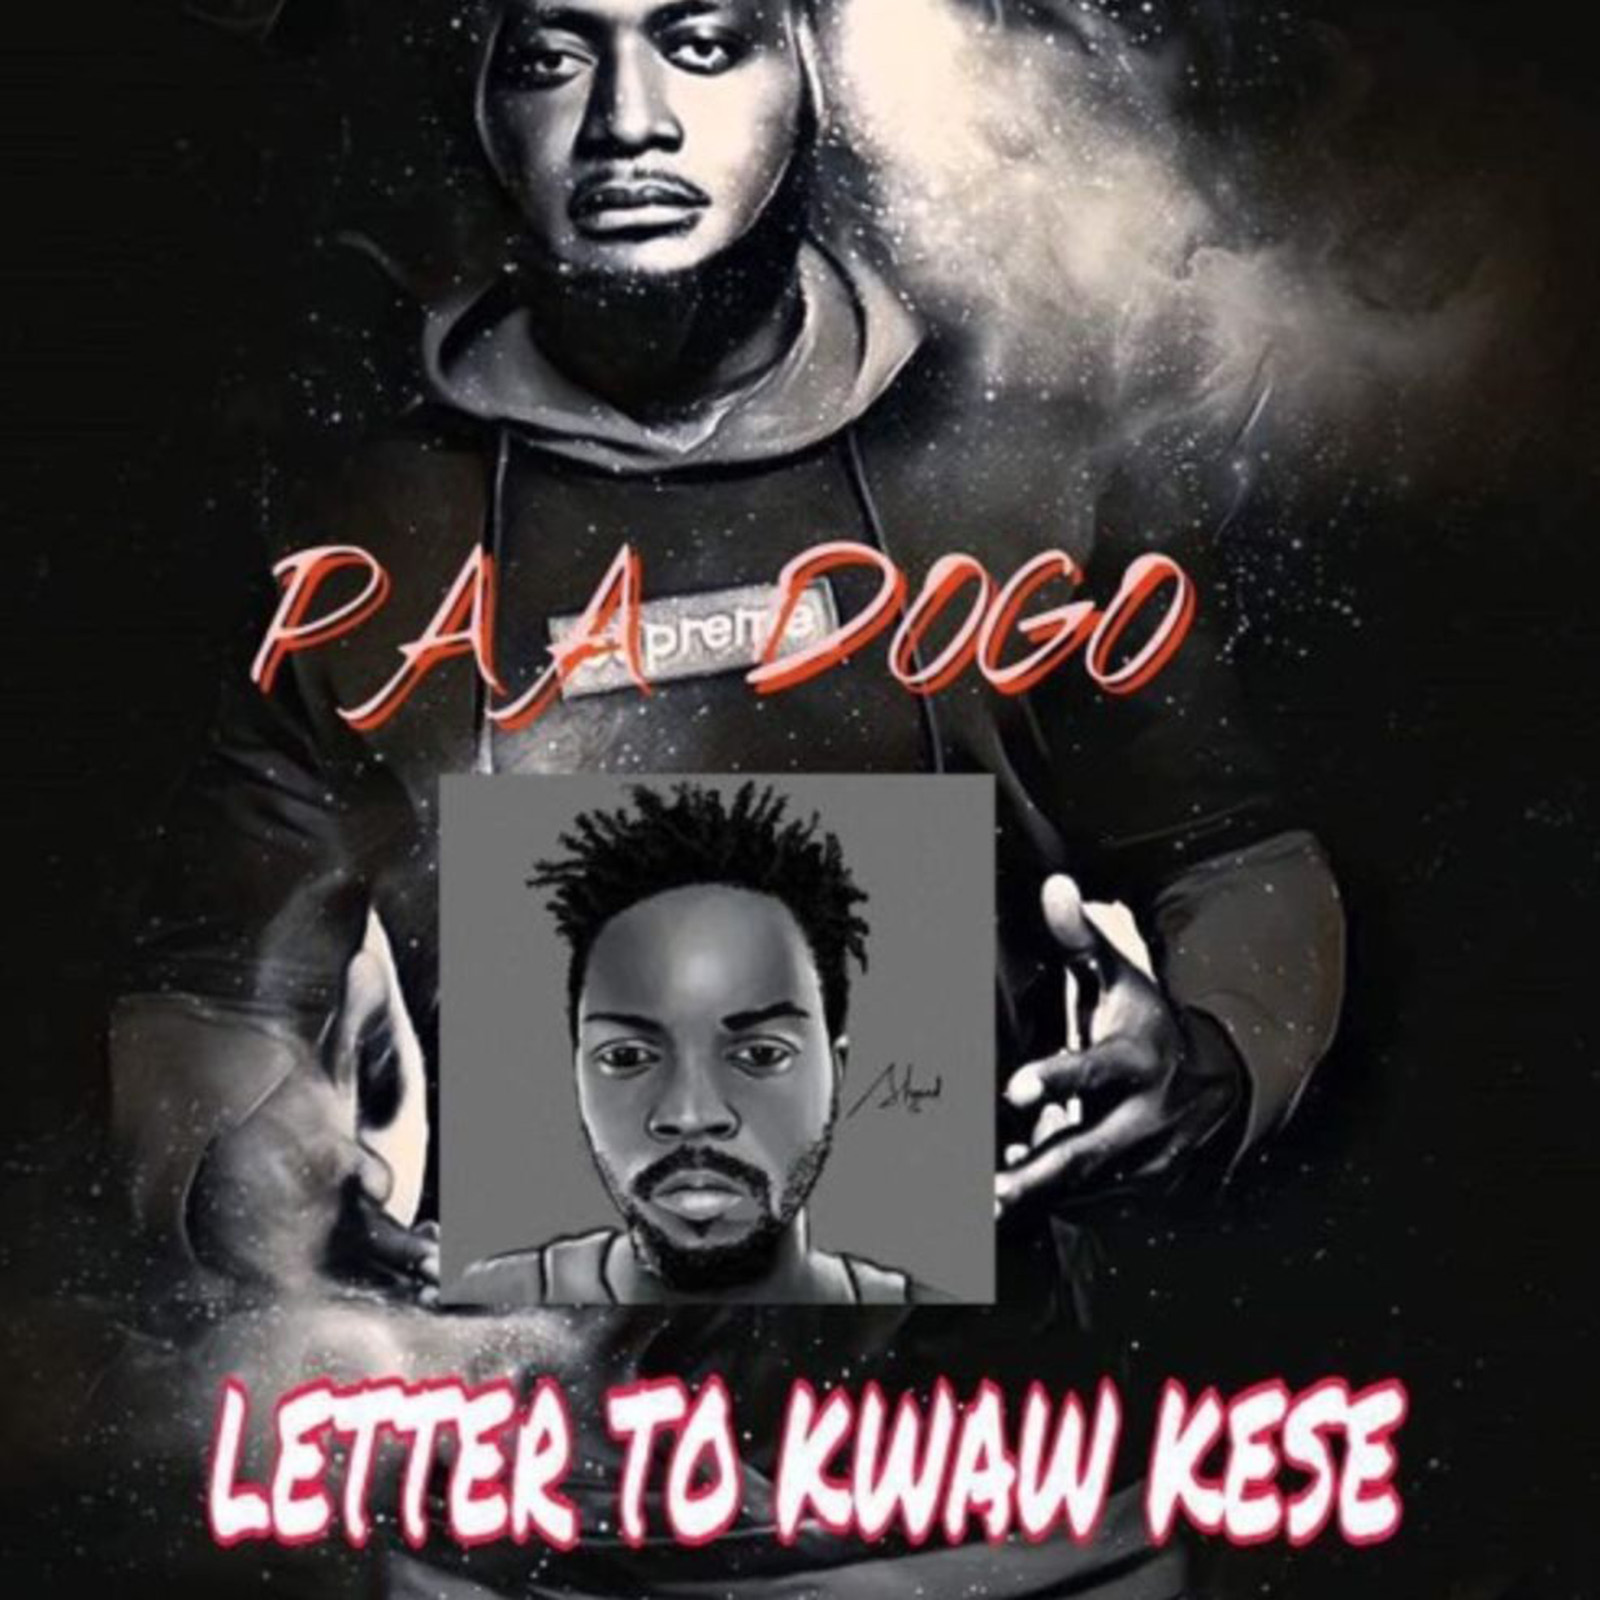 Letter To Kwaw Kese (Page 1) by Paa Dogo